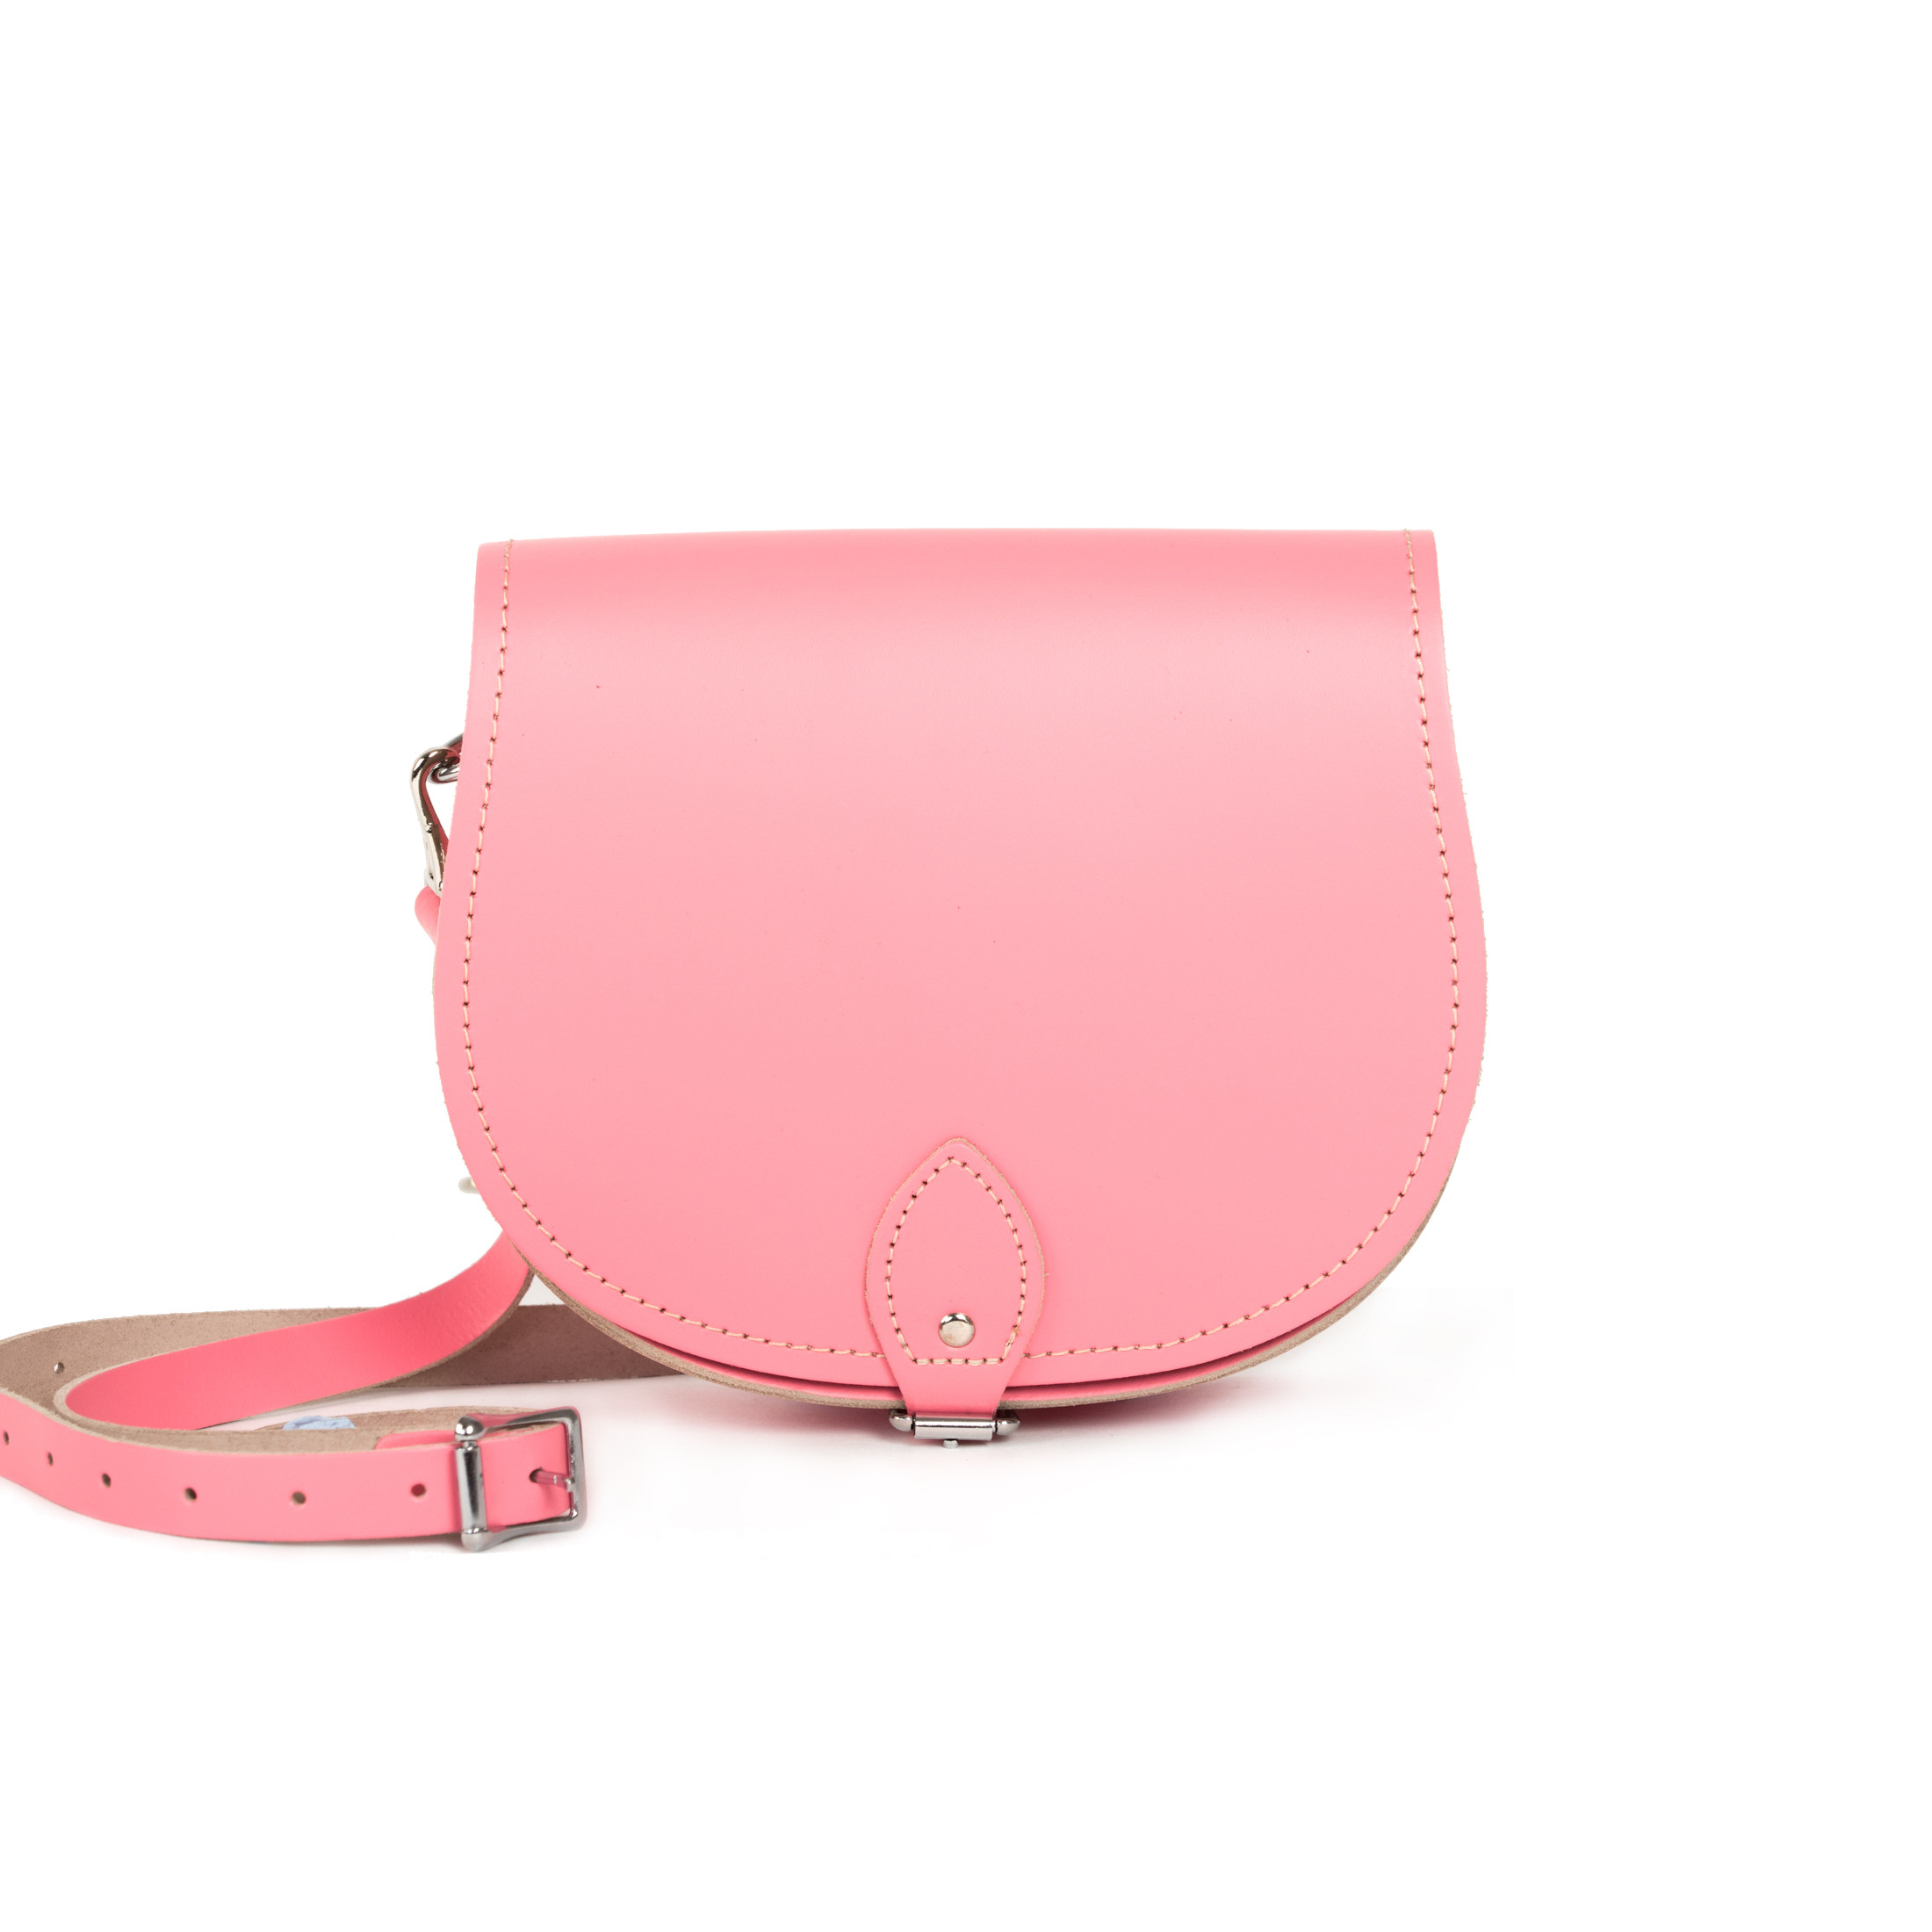 Avery Premium Leather Saddle Bag in Pastel Pink